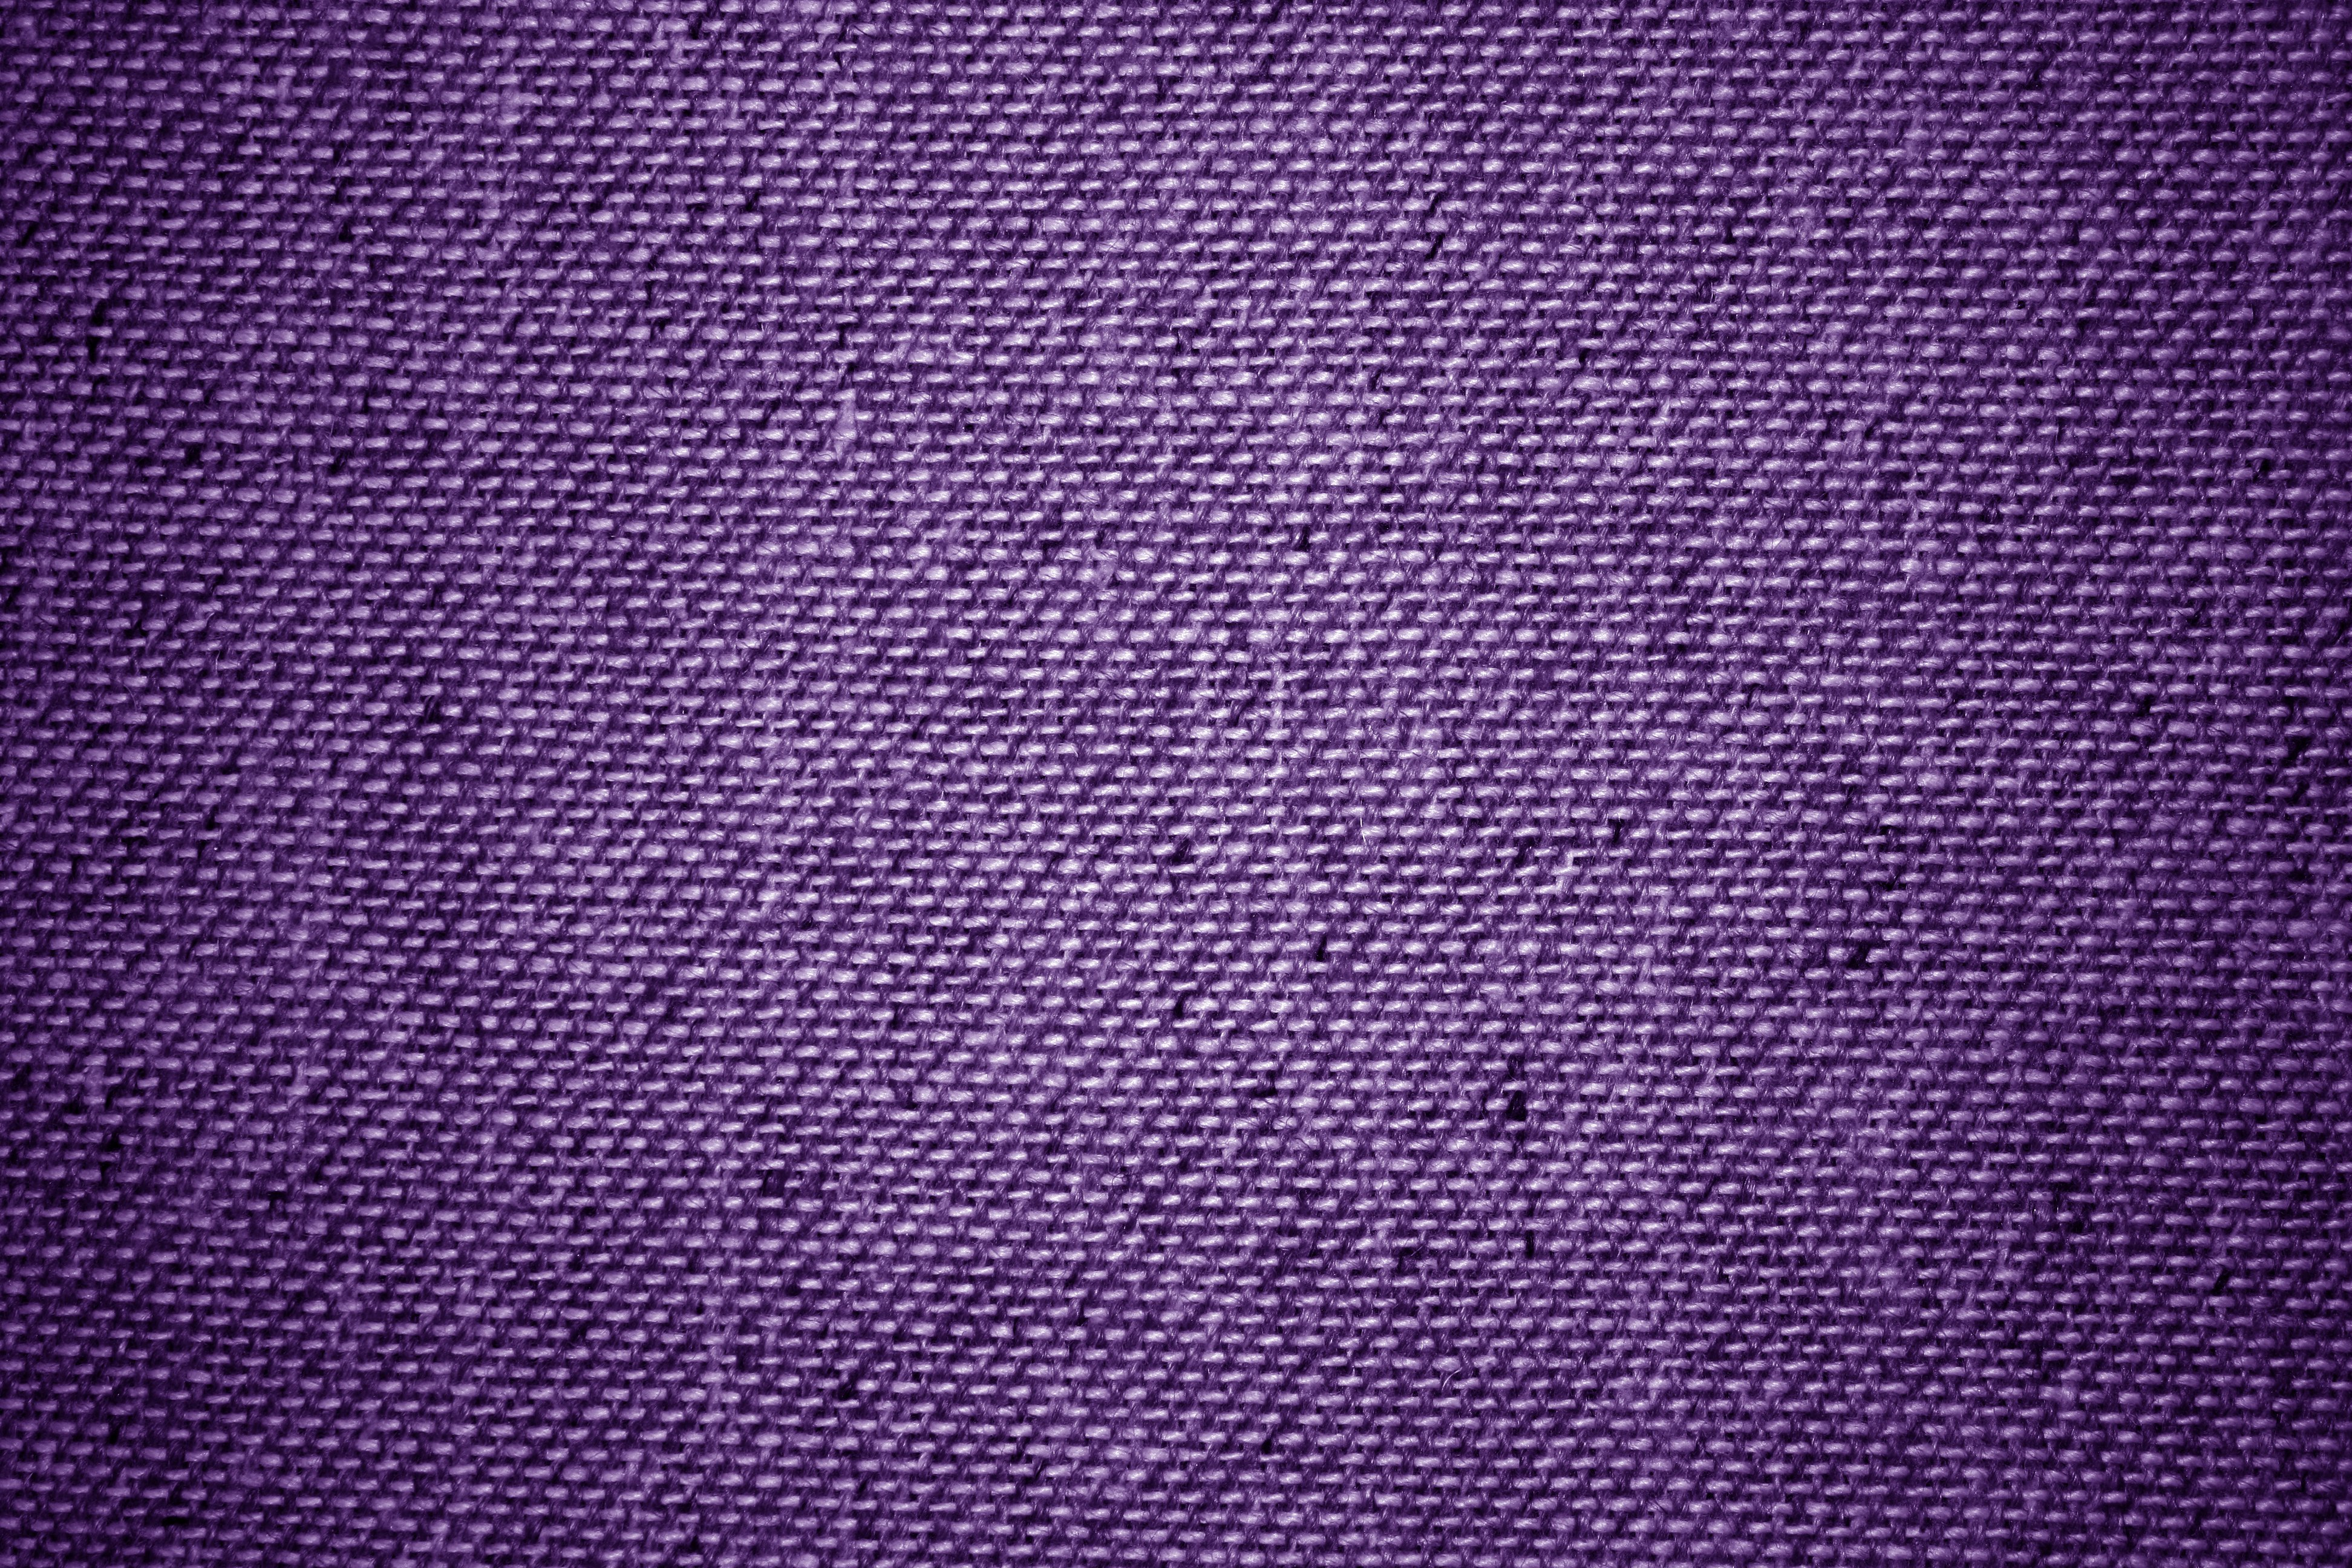 Purple Upholstery Fabric Close Up Texture Picture Free Photograph